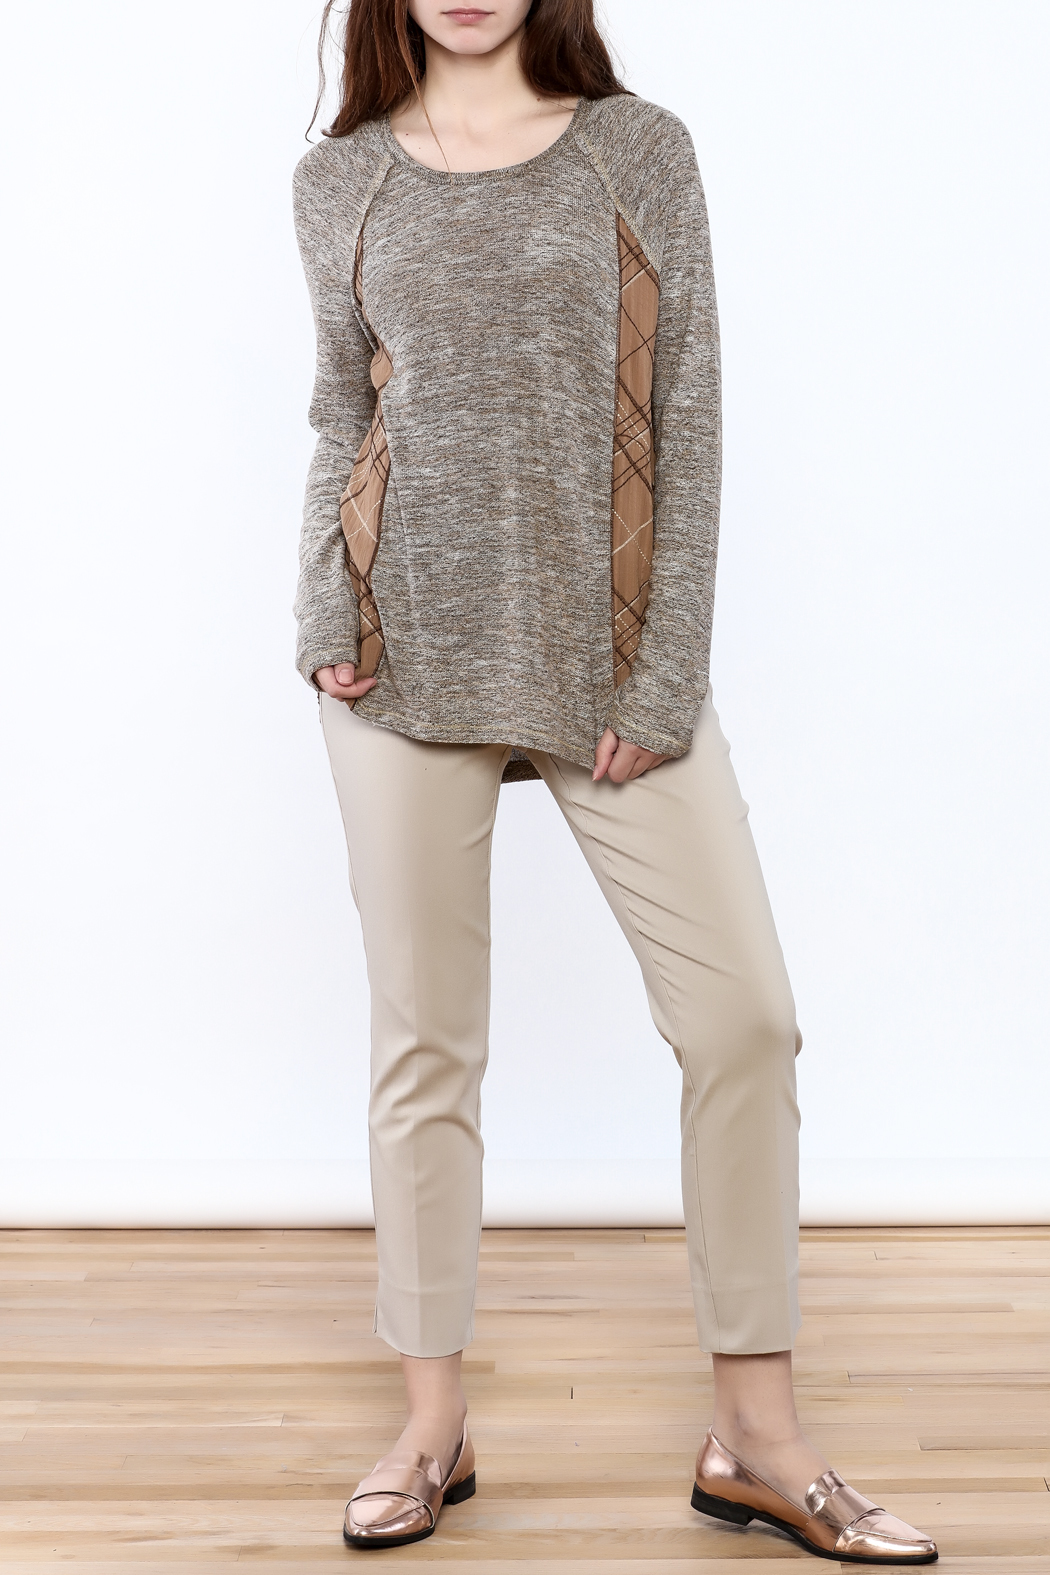 Mystree Grey Knit Top - Front Full Image